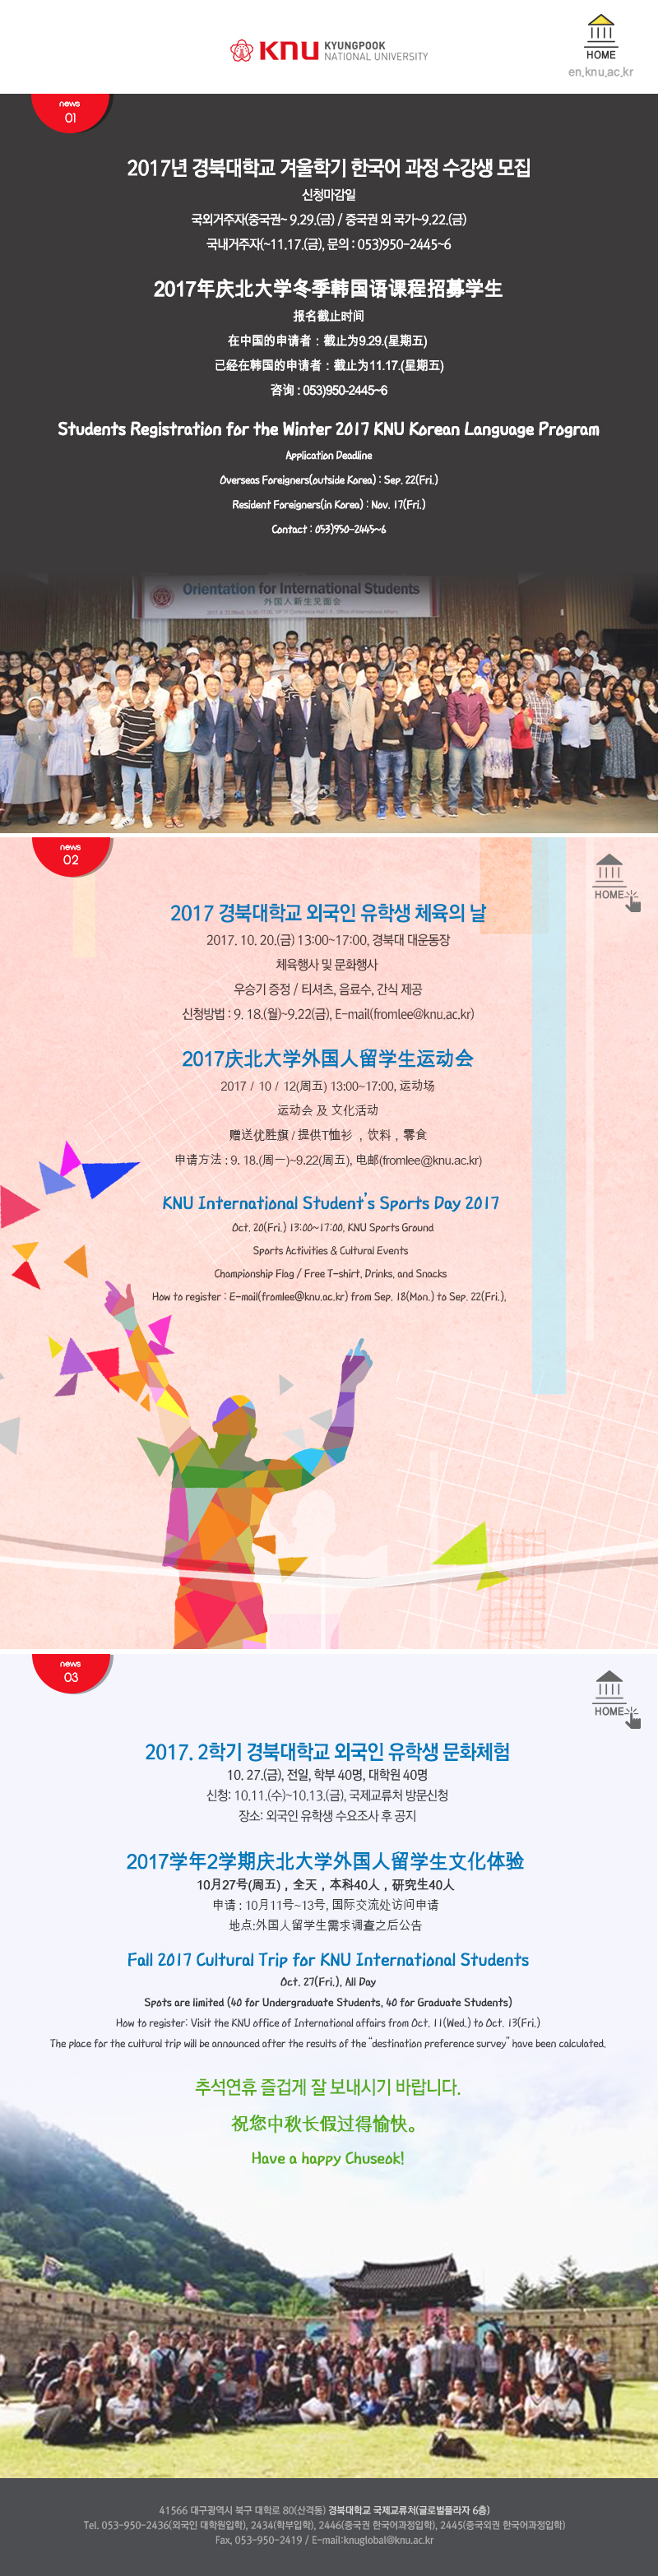 2017 KNU International Program Newsletter NO.3 관련 이미지입니다.